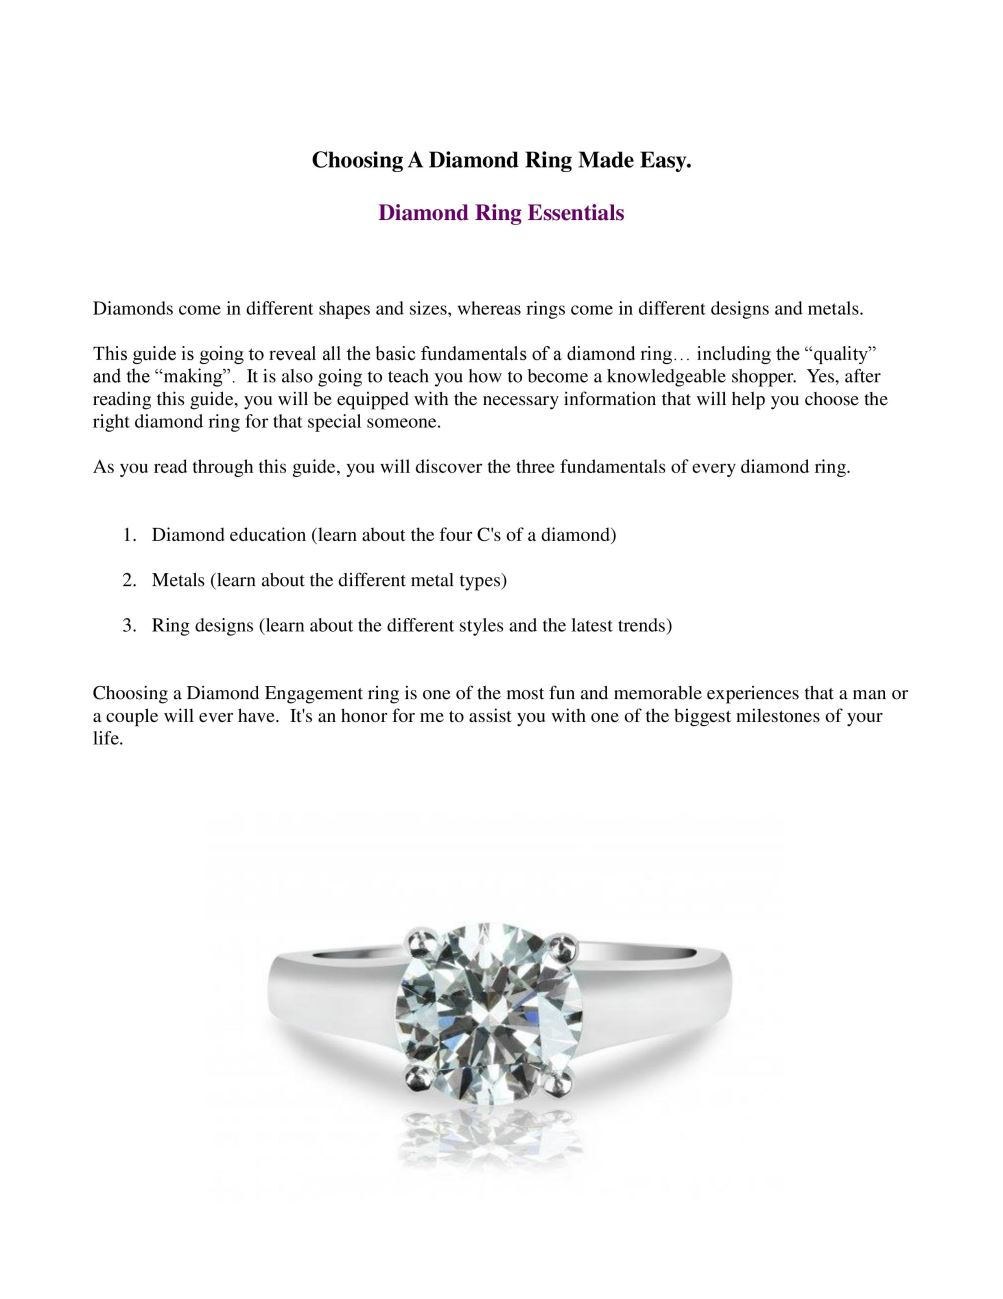 Consumer Guide (Diamond Rings)-page-003